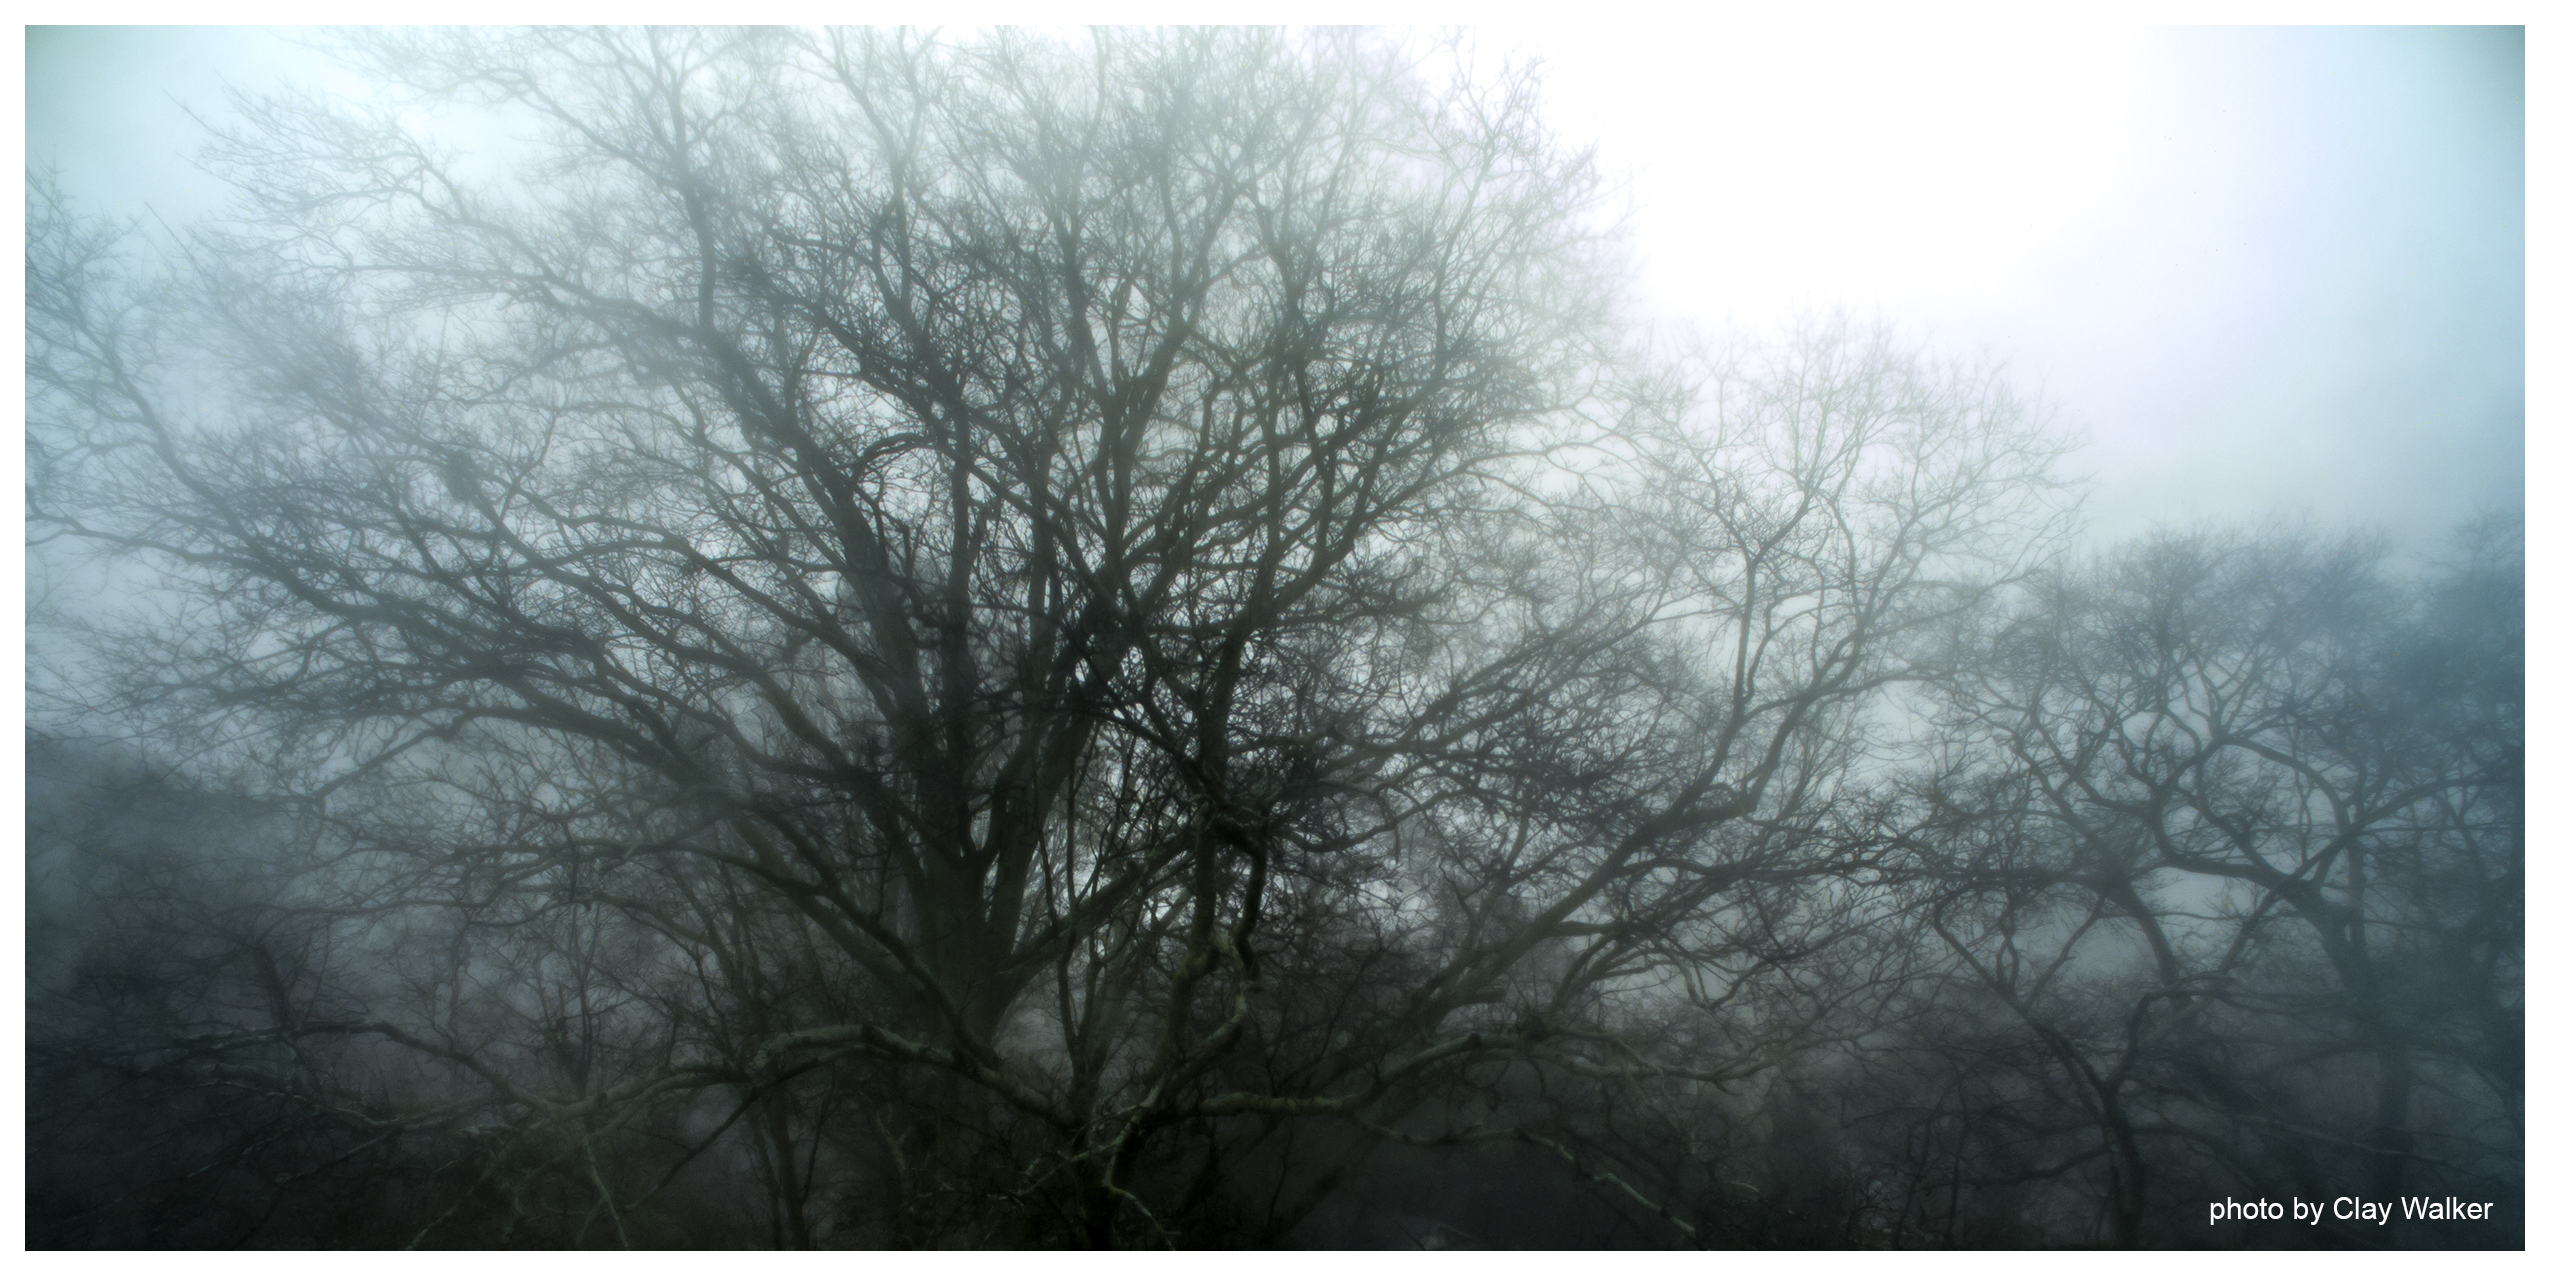 winter trees in fog author walker clay